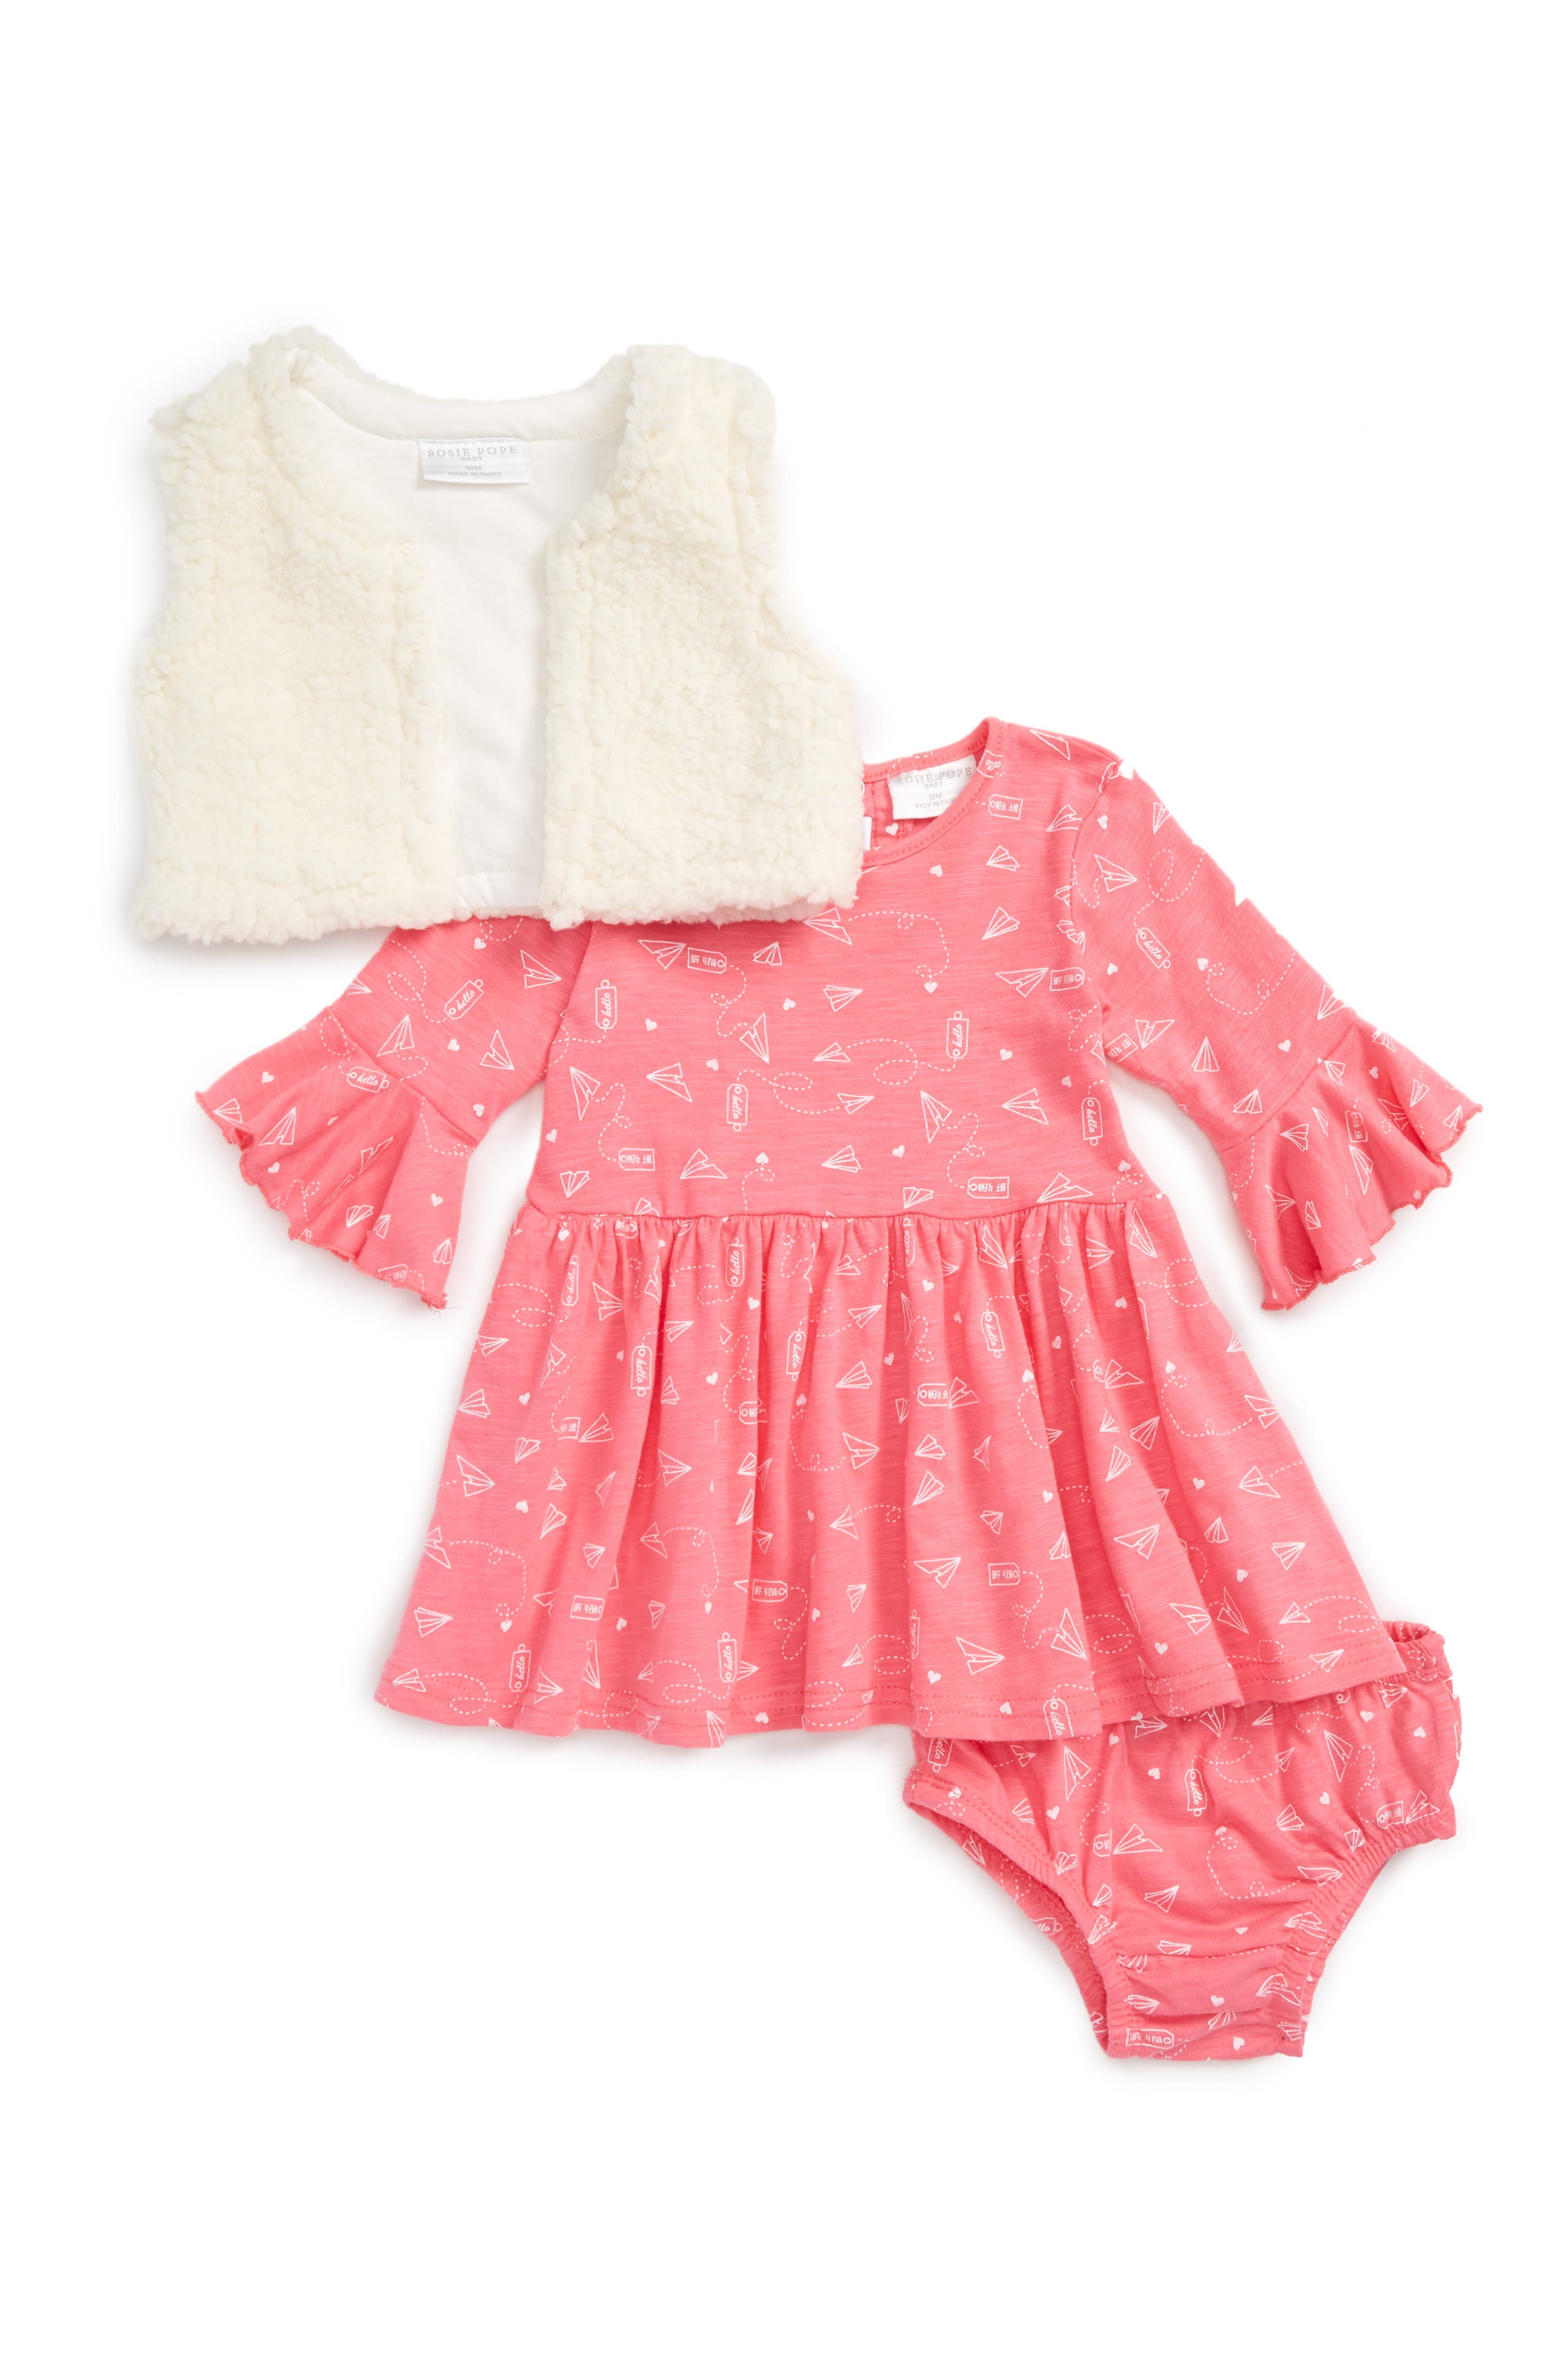 Alternate Image 1 Selected - Rosie Pope Airplane Notes Print Dress & Faux Fur Vest Set (Baby Girls)